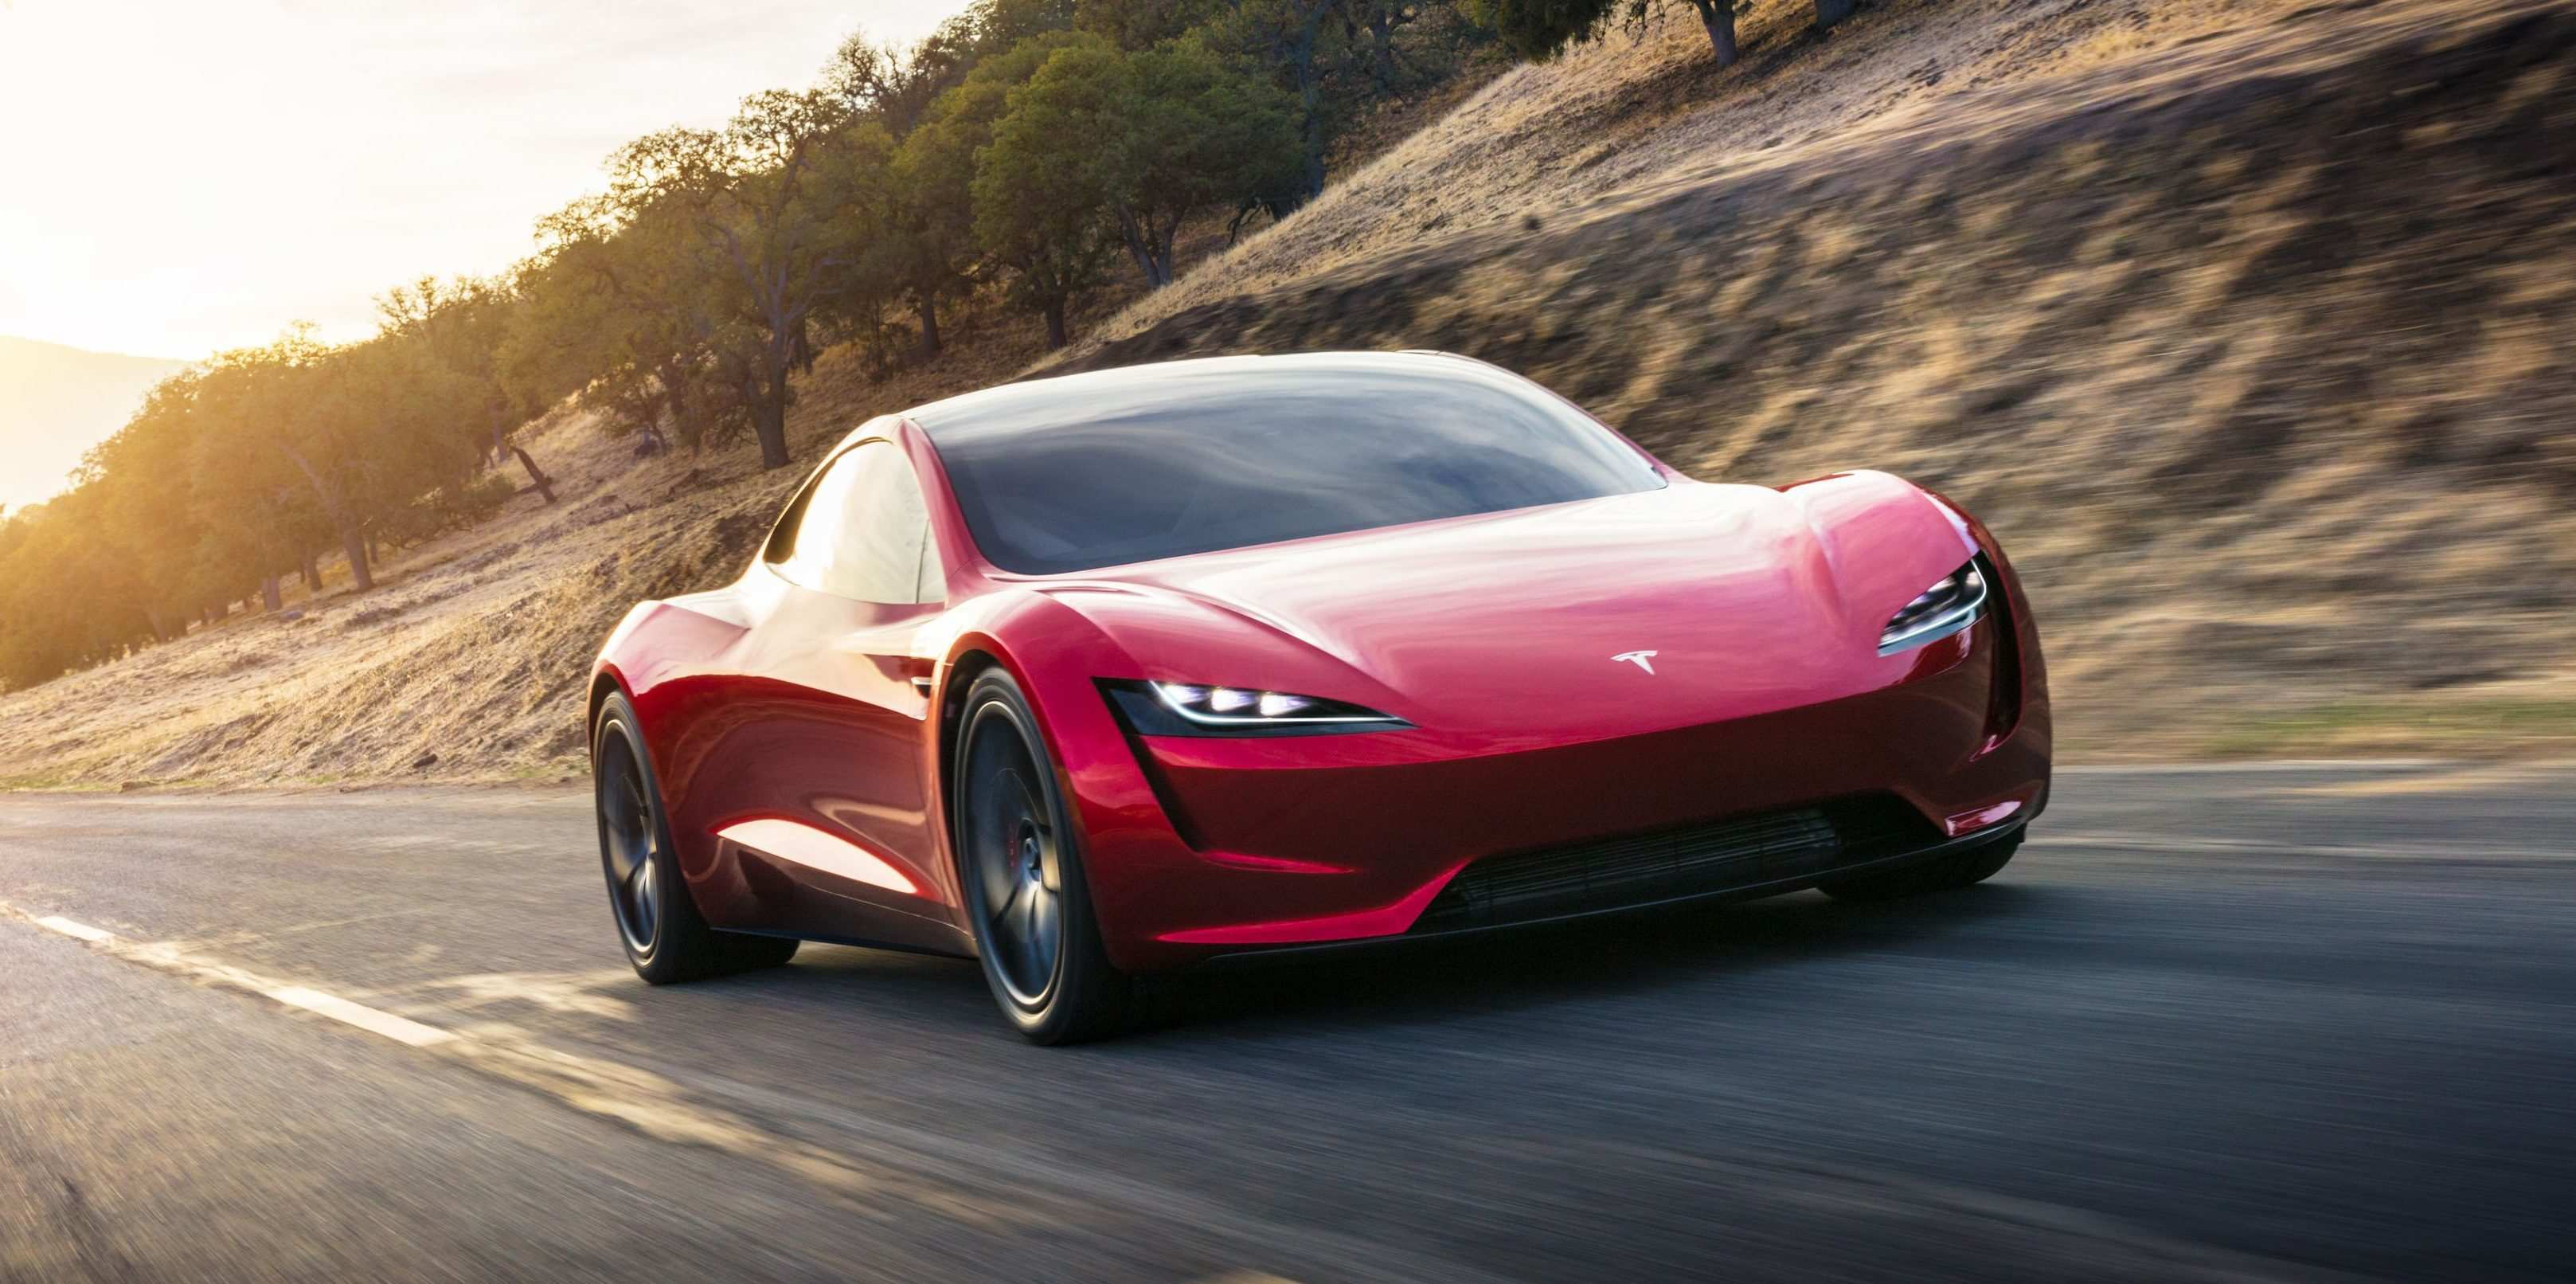 60 All New 2020 Tesla Roadster Launch Engine with 2020 Tesla Roadster Launch